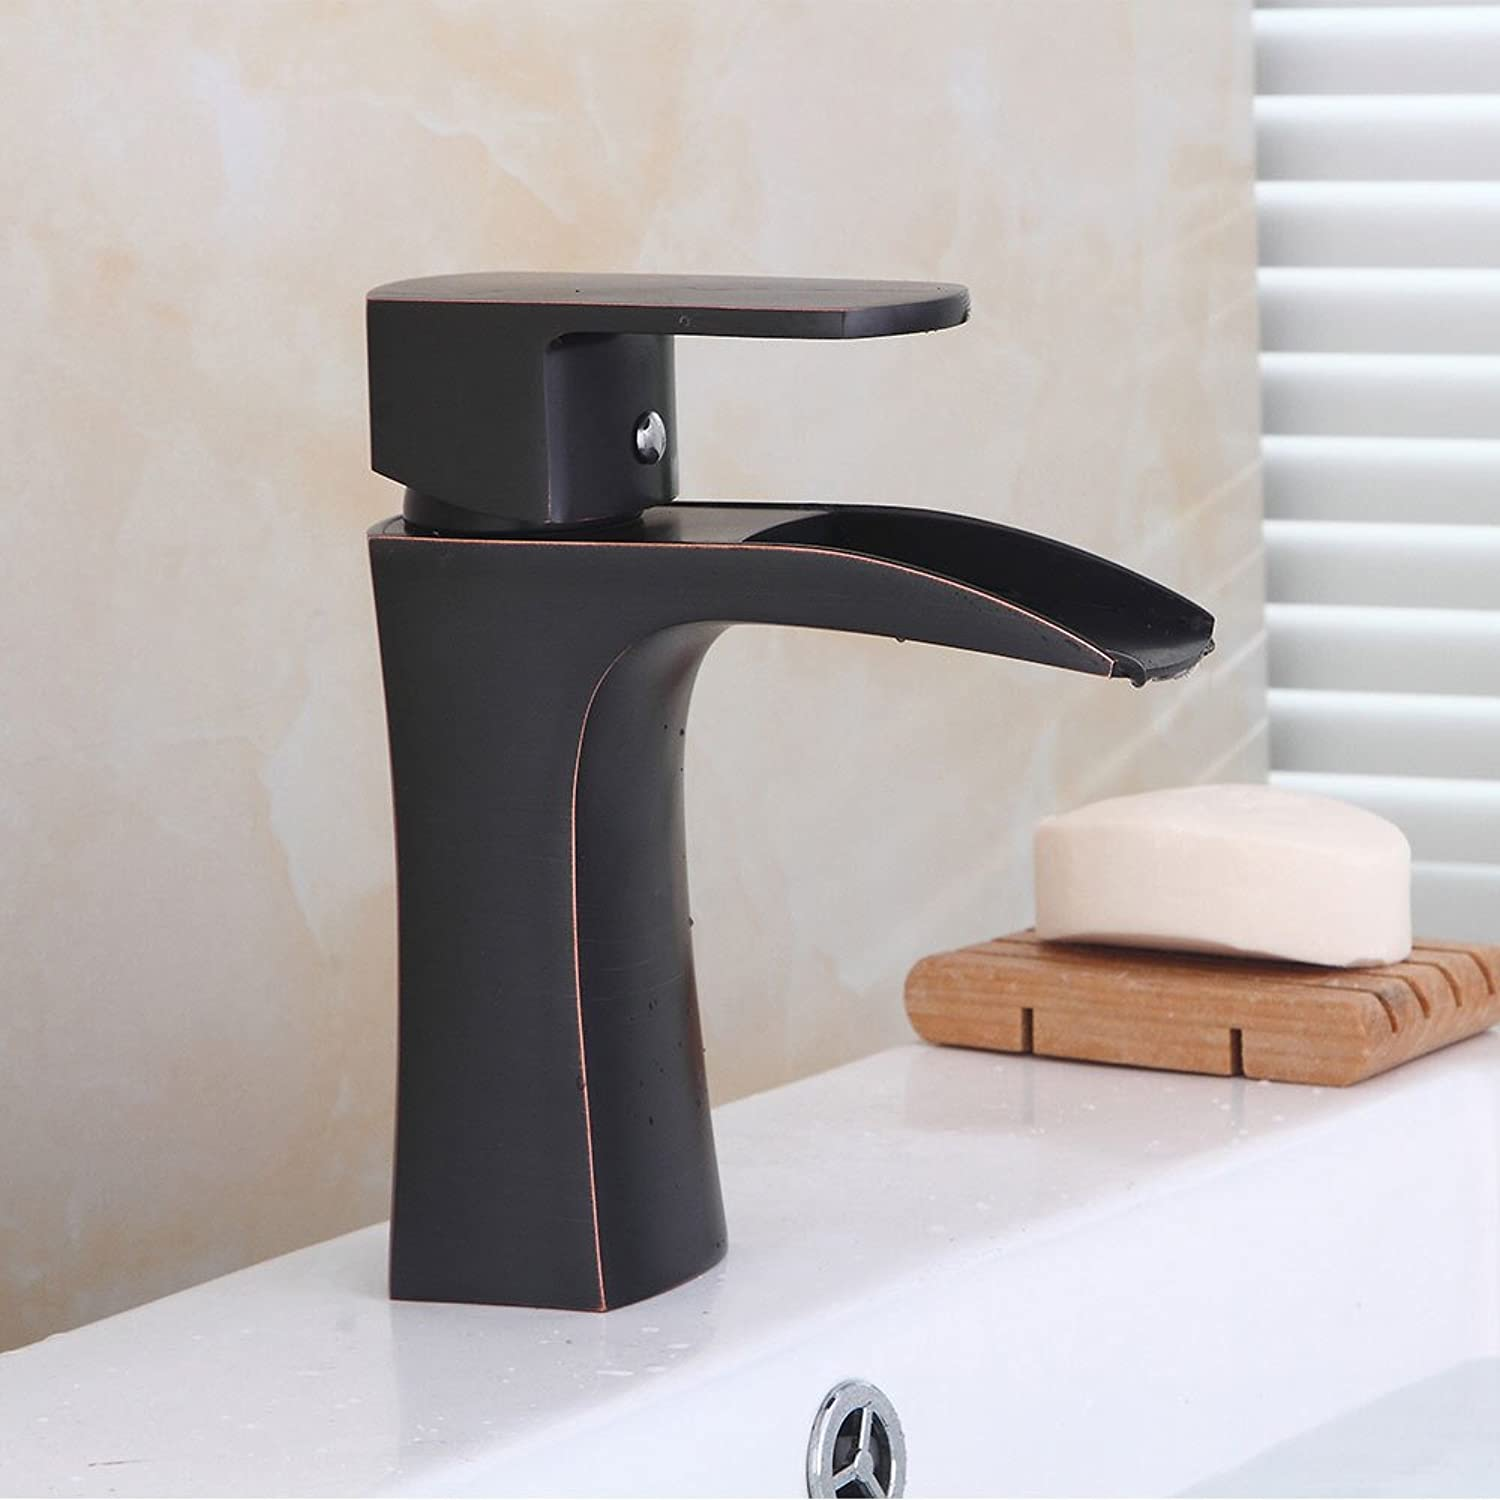 Bathroom Sink Basin Lever Mixer Tap Cold and Hot Water Faucet European Bench Basin Faucet Ancient Basin Faucet Retro Waterfall Cold and Hot Bathroom